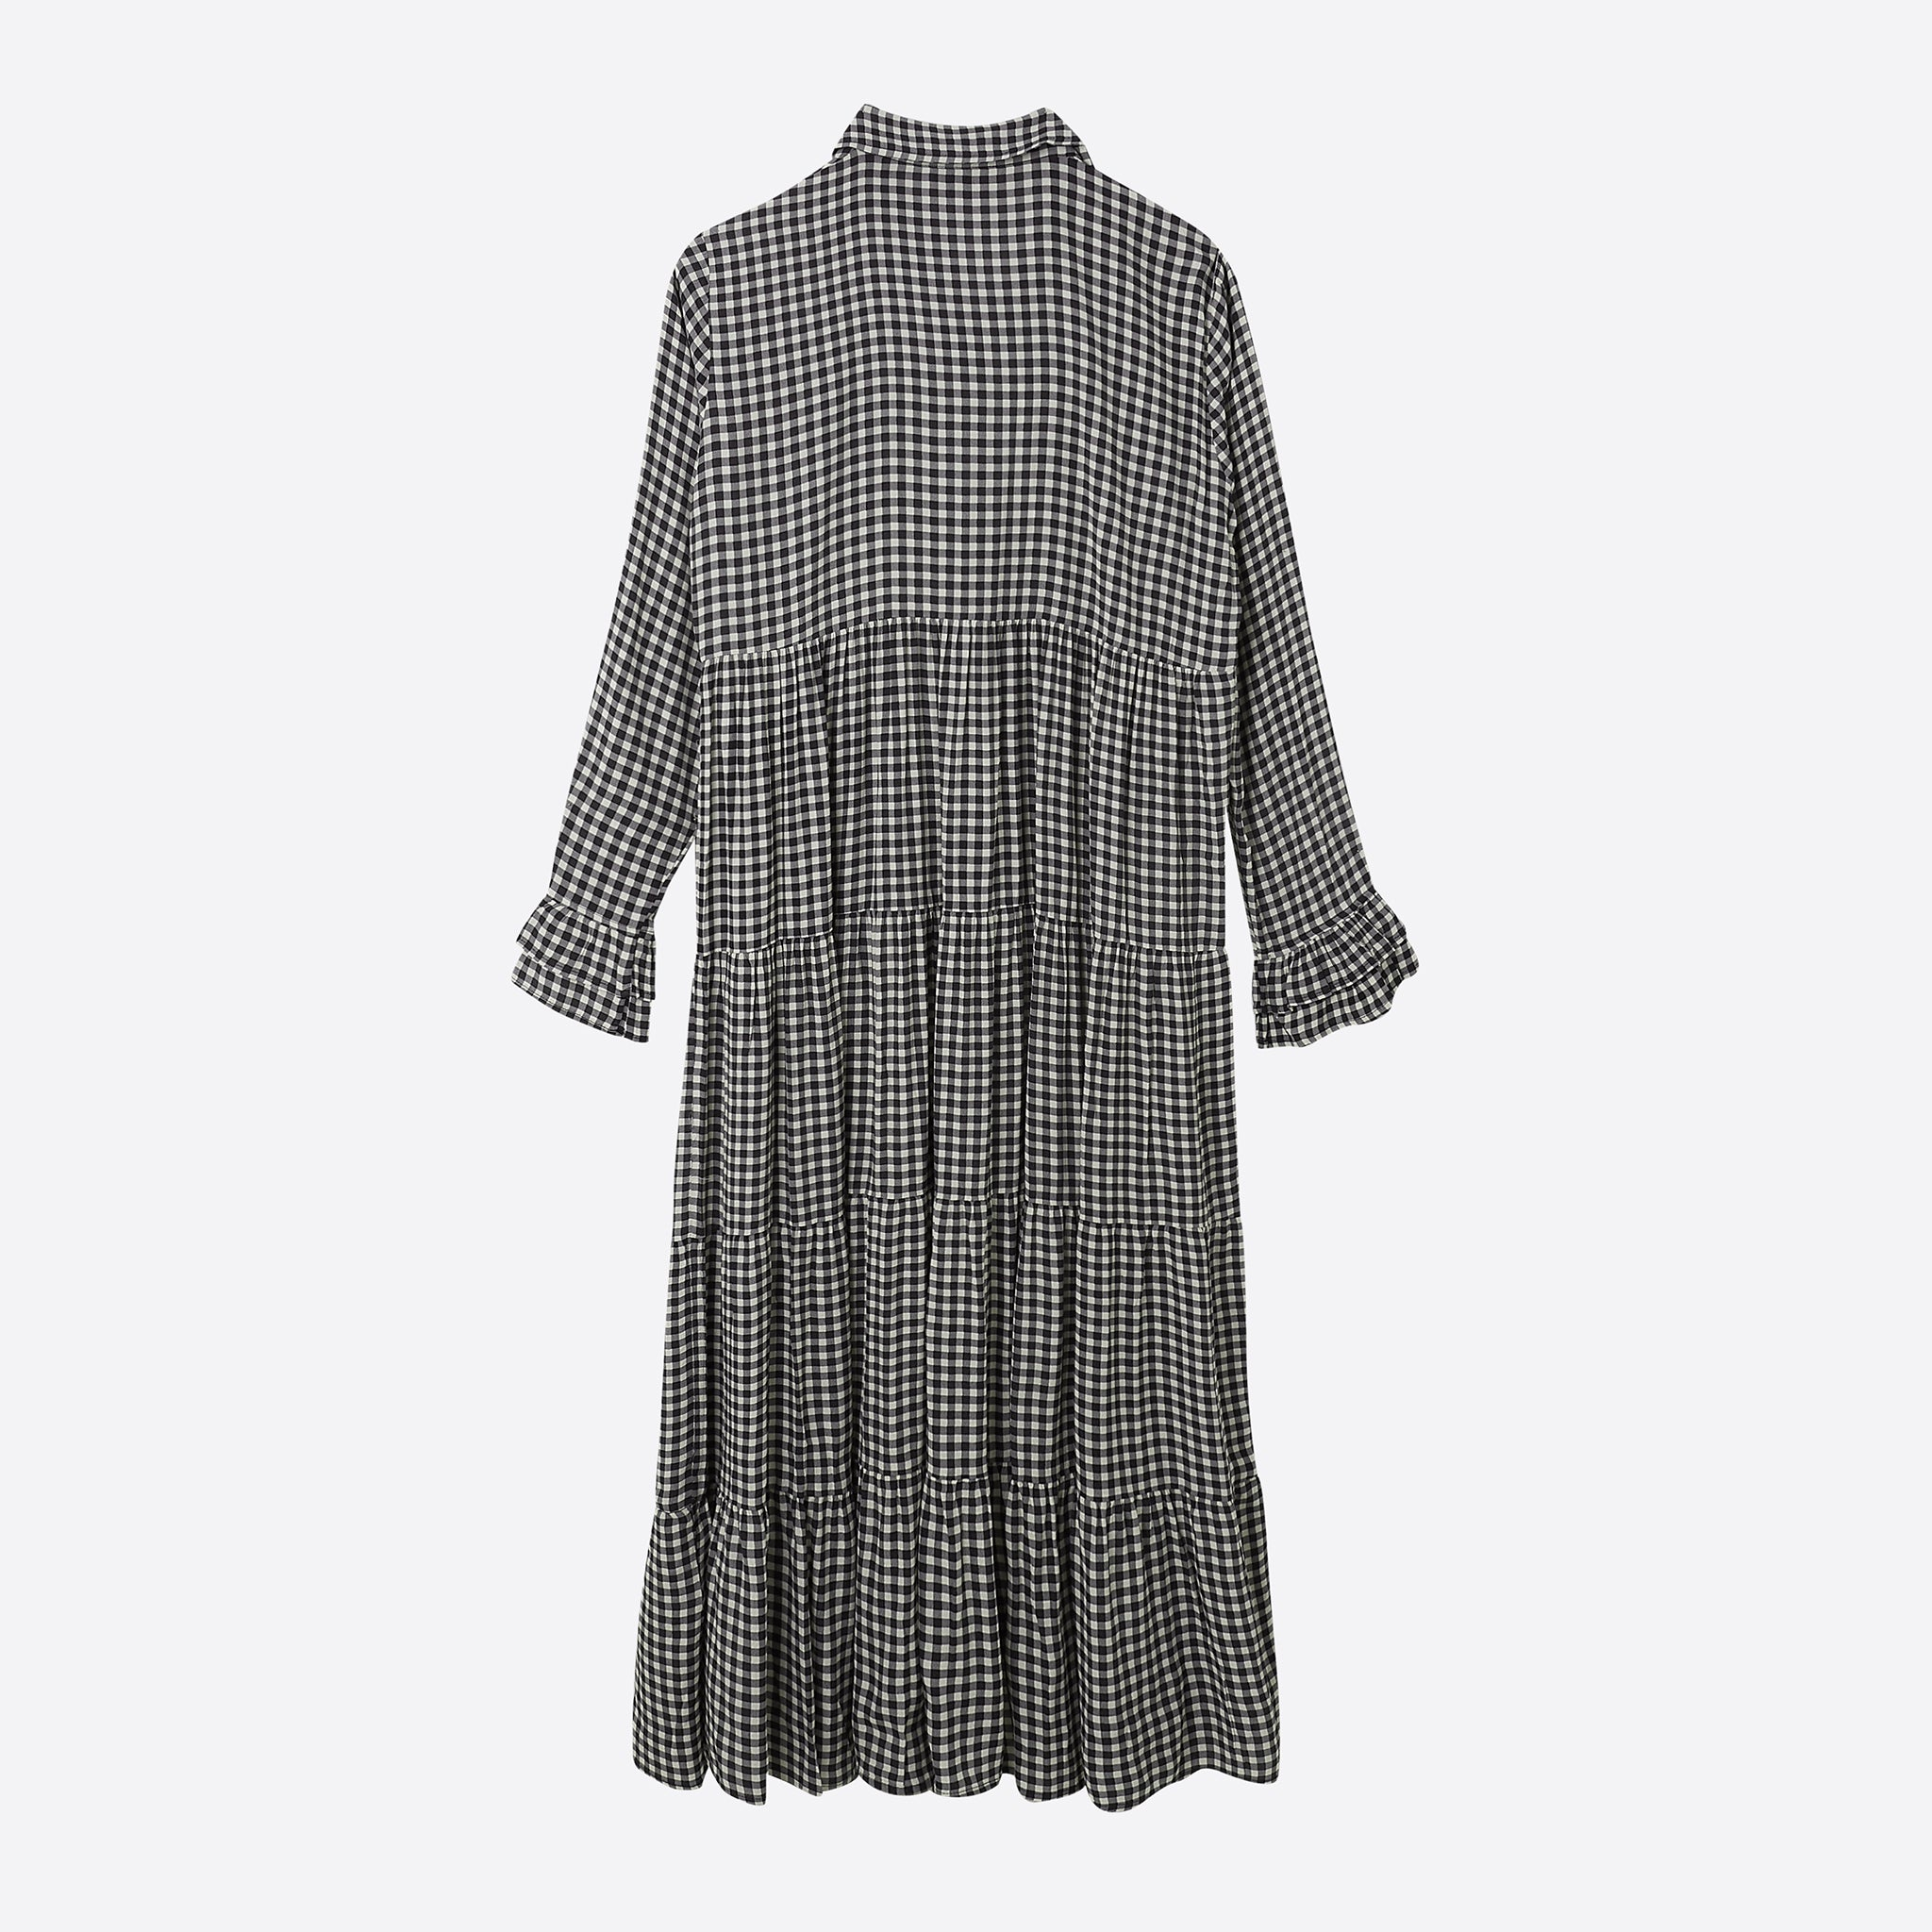 271f4bf1ac Ganni Printed Crepe Layer Dress in Black Gingham — Our Daily Edit